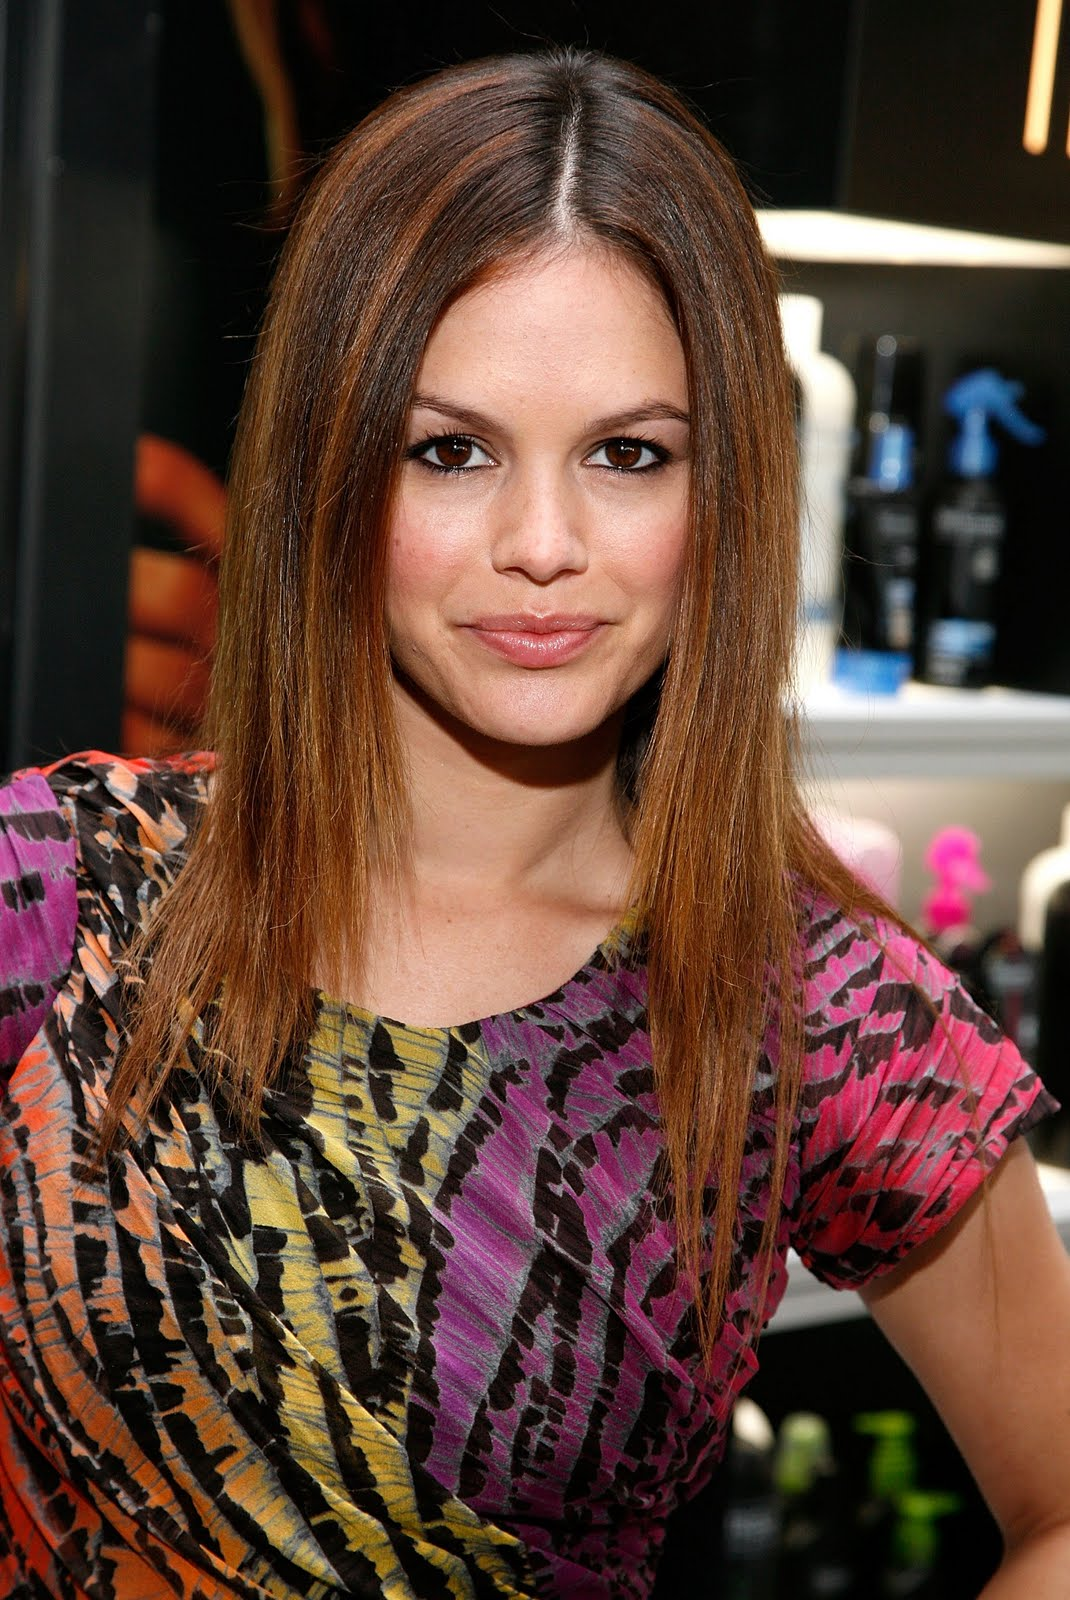 Hairstyles Salon, Long Hairstyle 2011, Hairstyle 2011, New Long Hairstyle 2011, Celebrity Long Hairstyles 2146